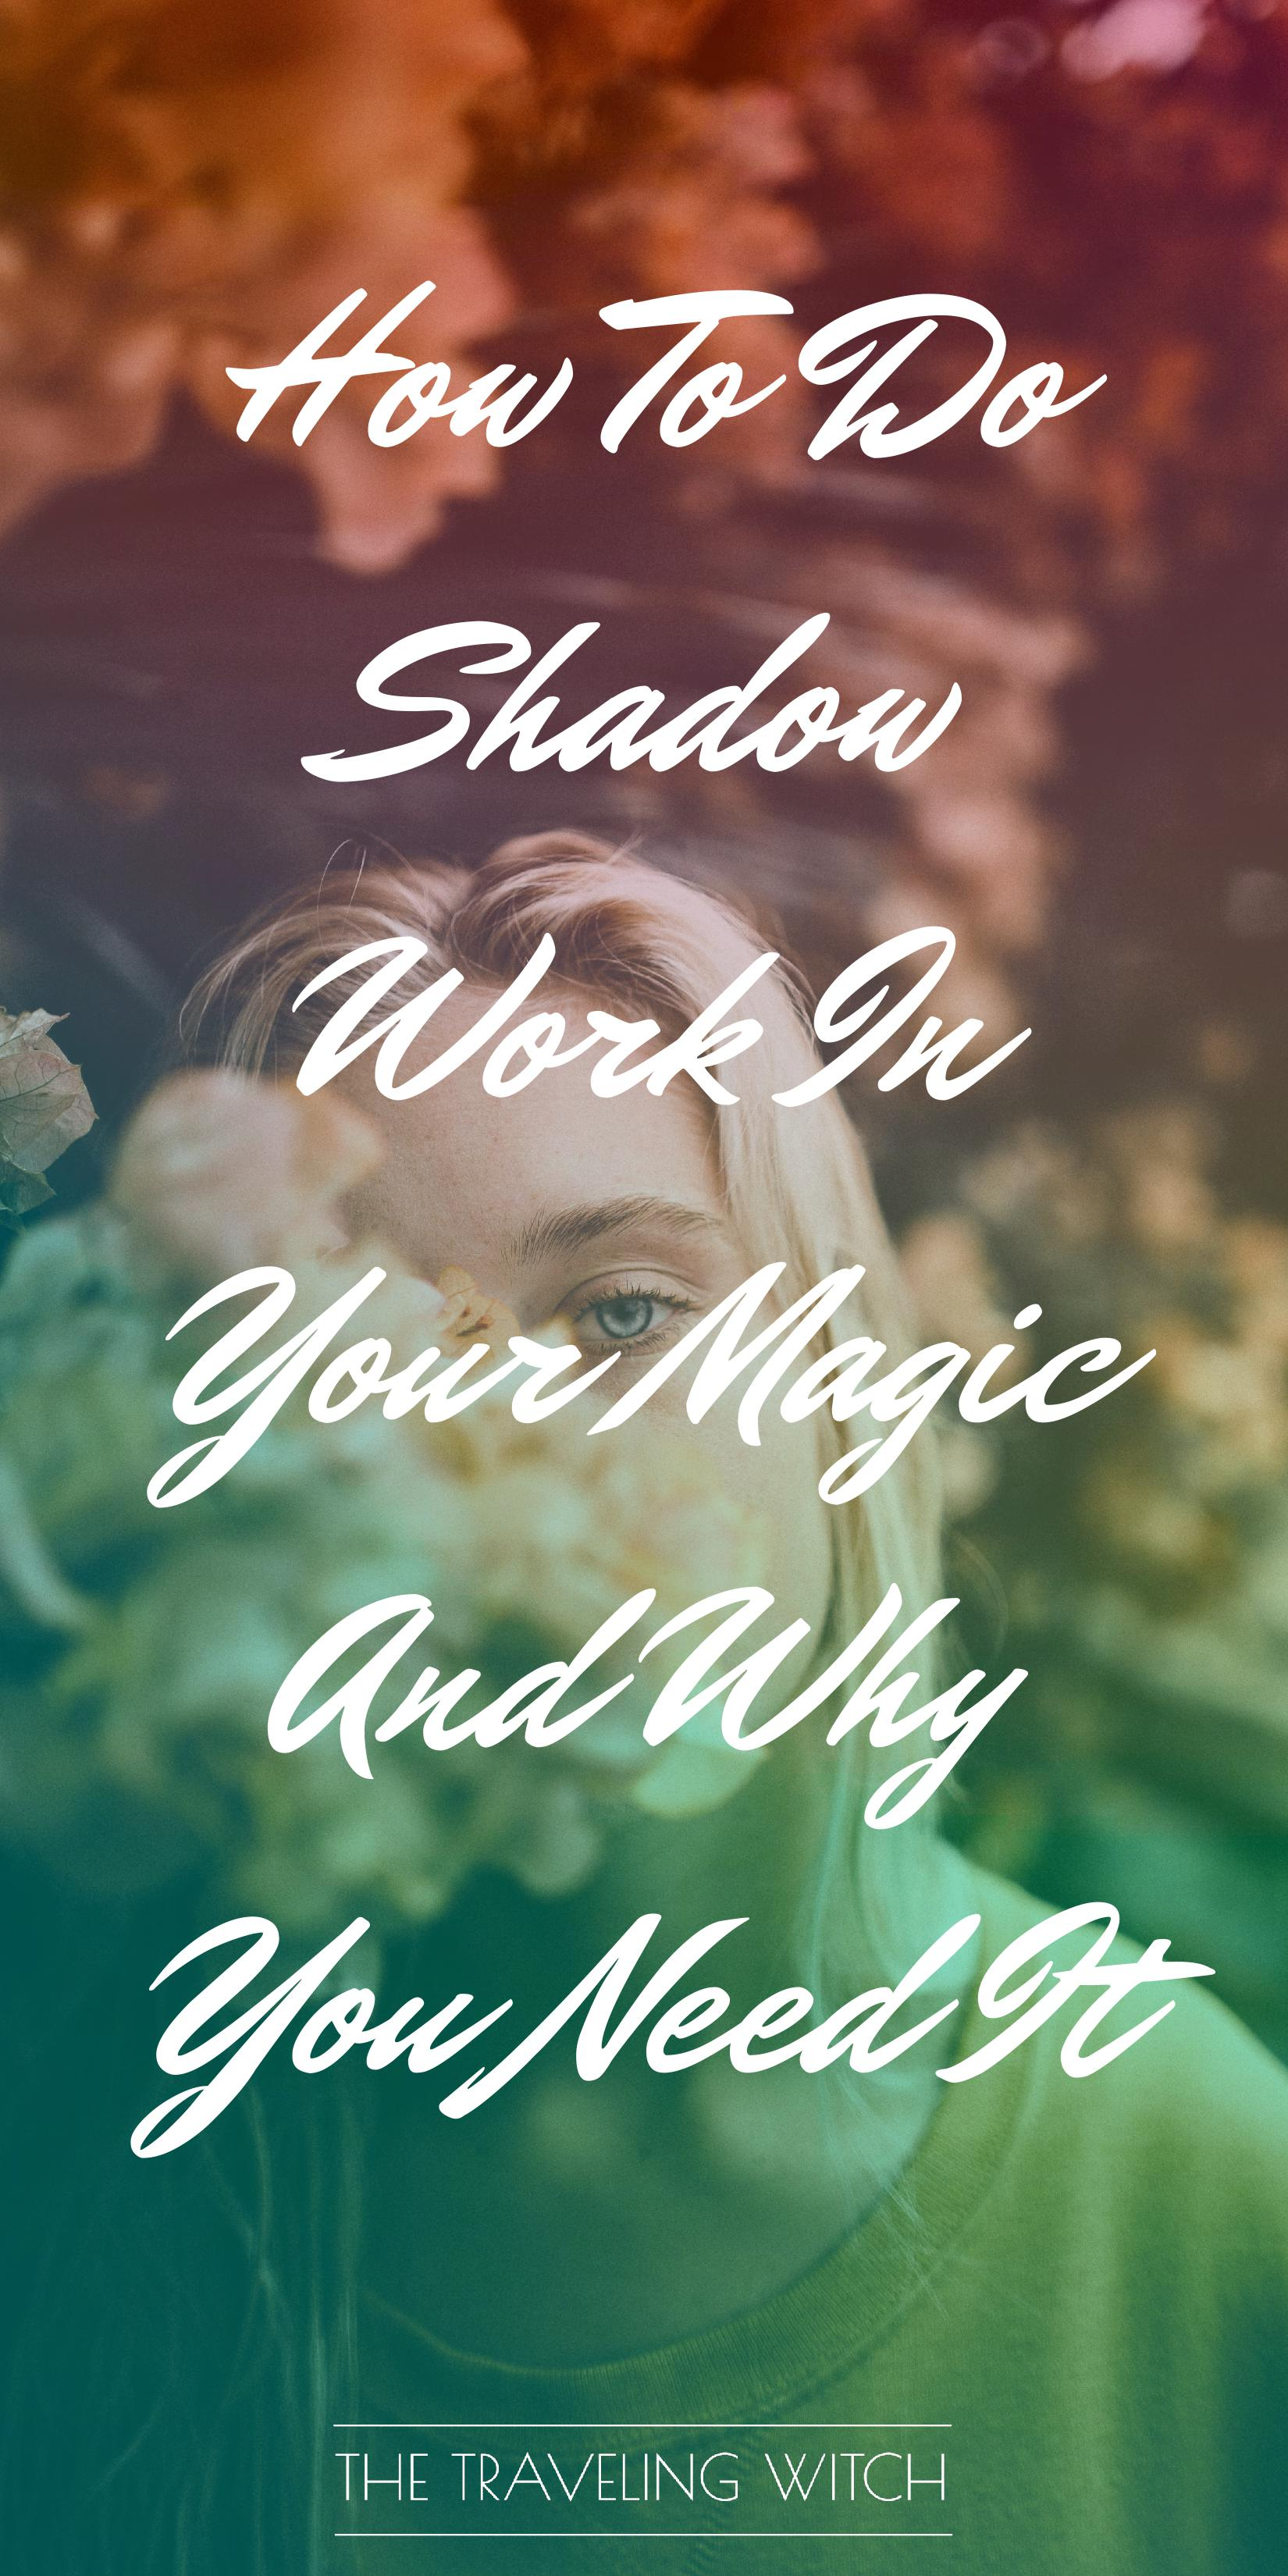 How To Do Shadow Work In Your Magic And Why You Need It by The Traveling Witch